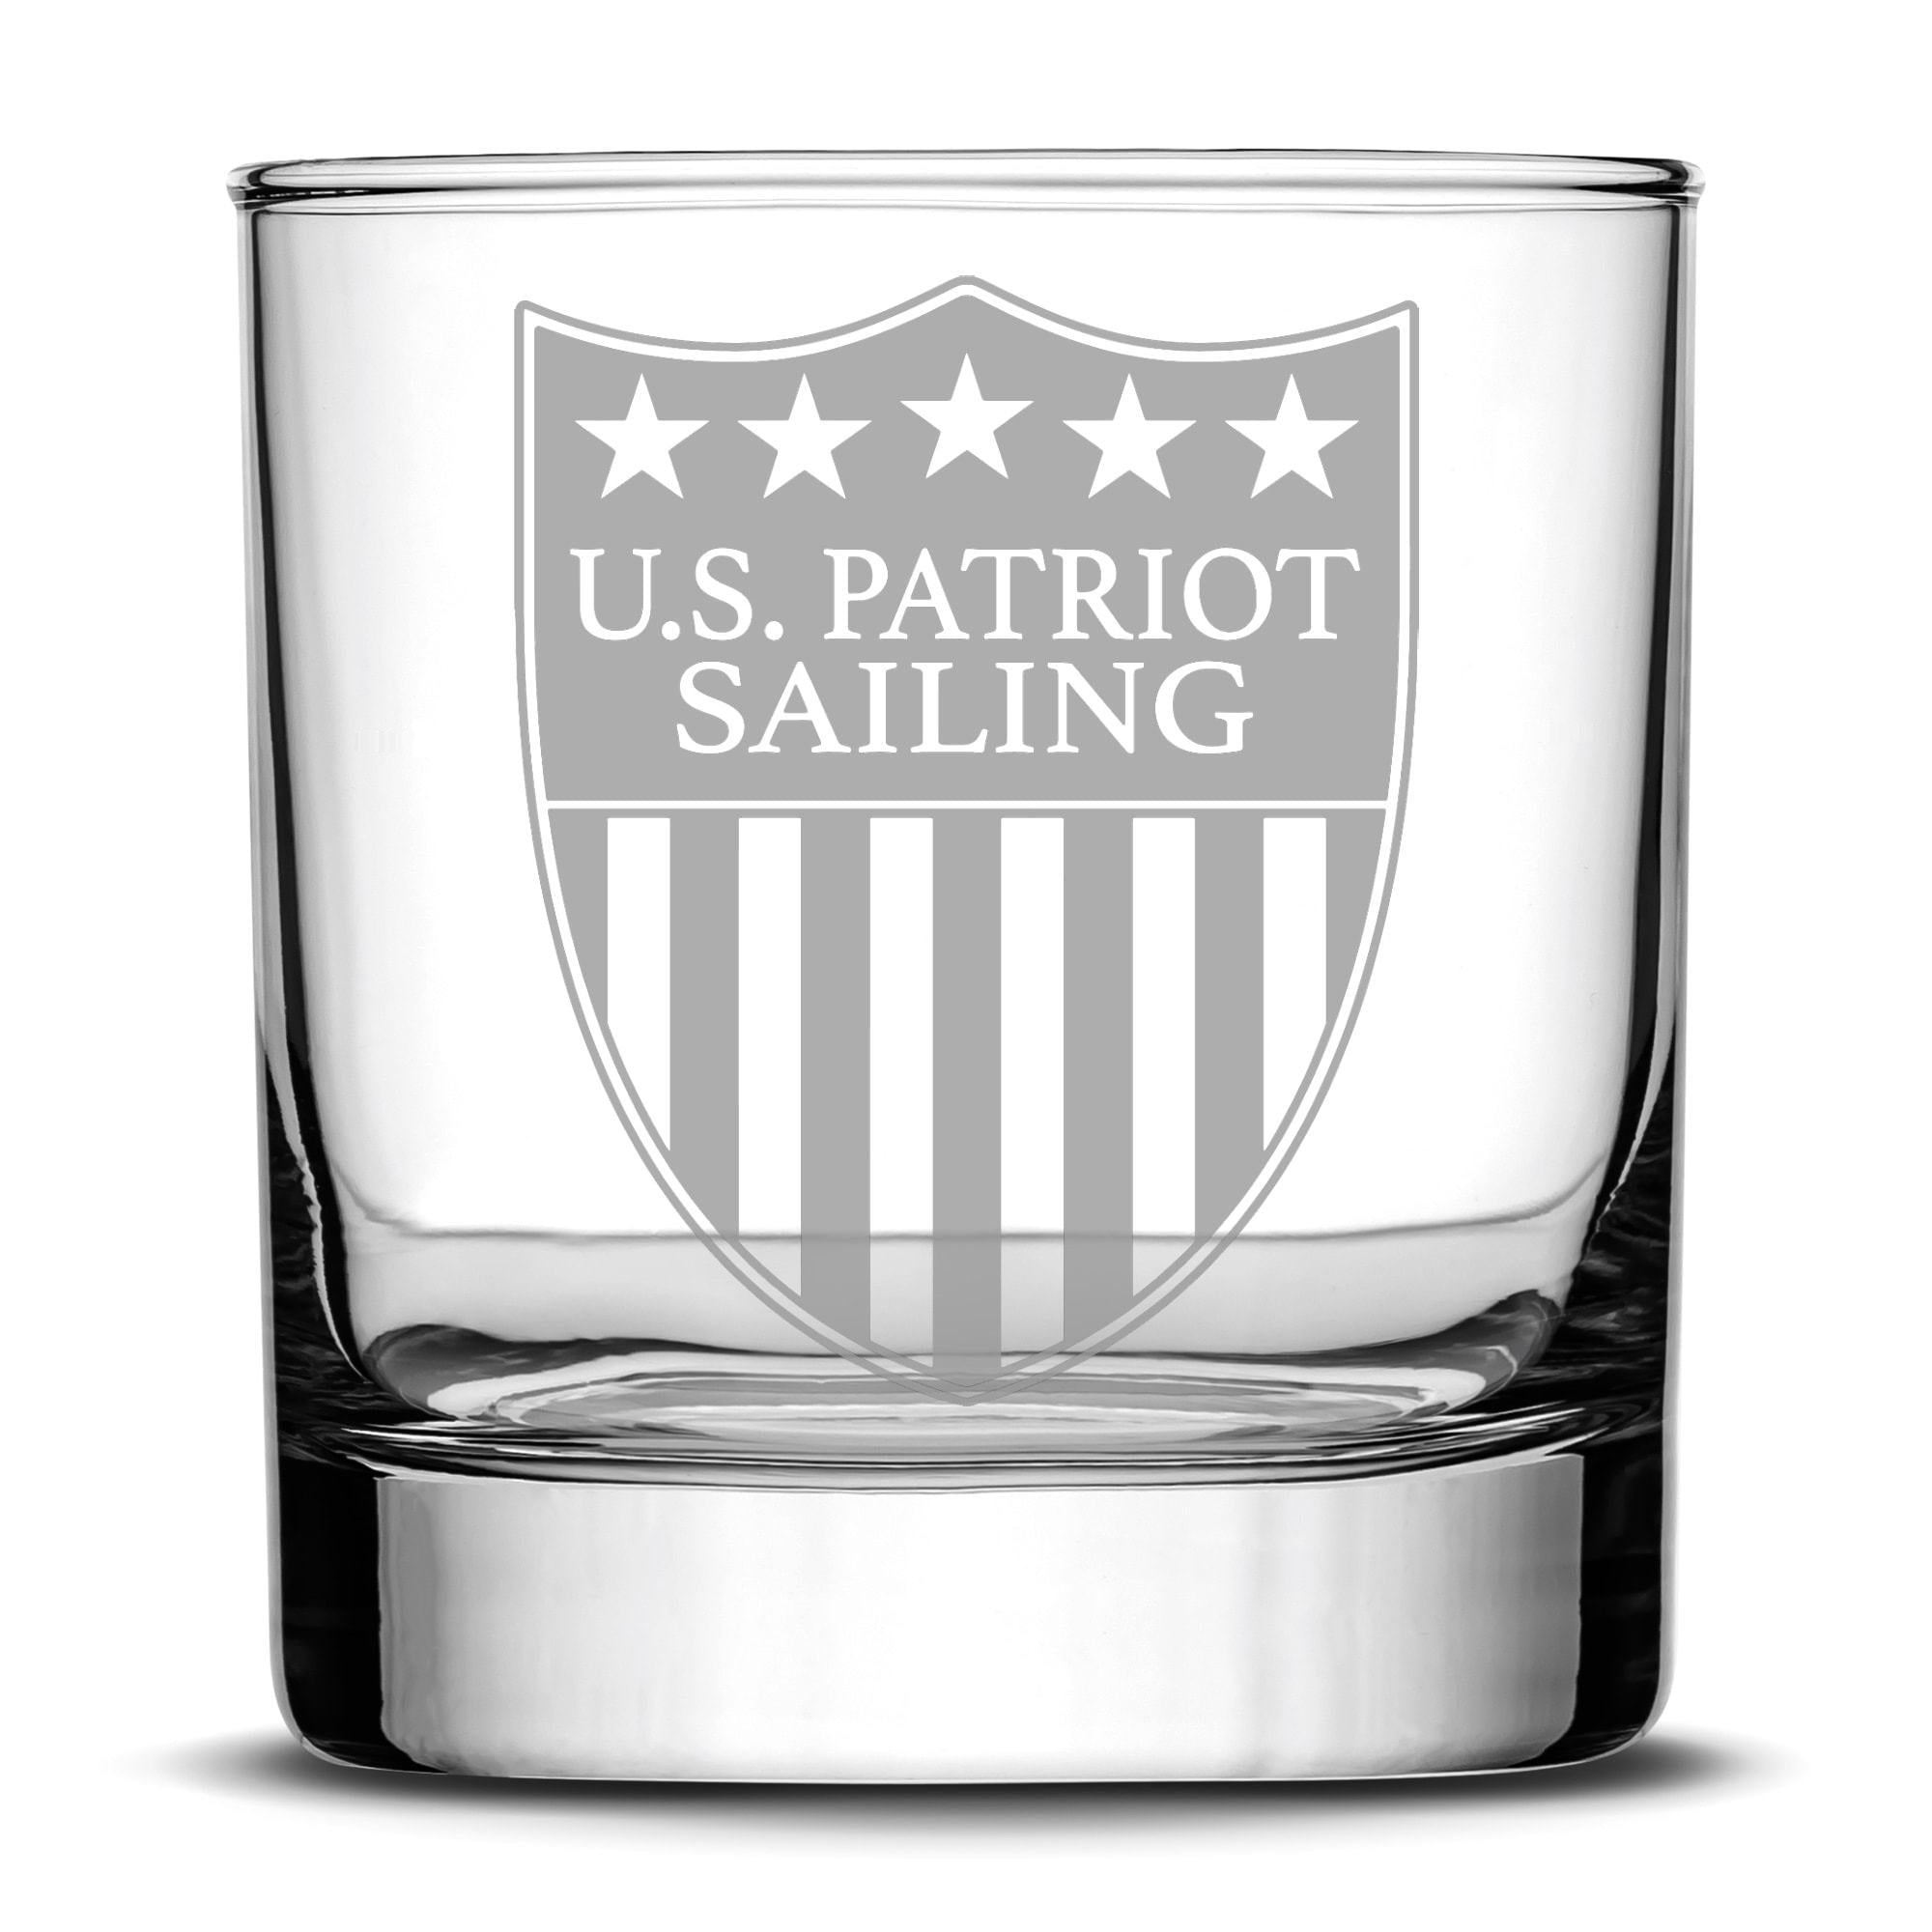 Premium US Patriot Sailing Whiskey Glass, 10oz Deep Etched Rocks Glass, Made in USA by Integrity Bottles